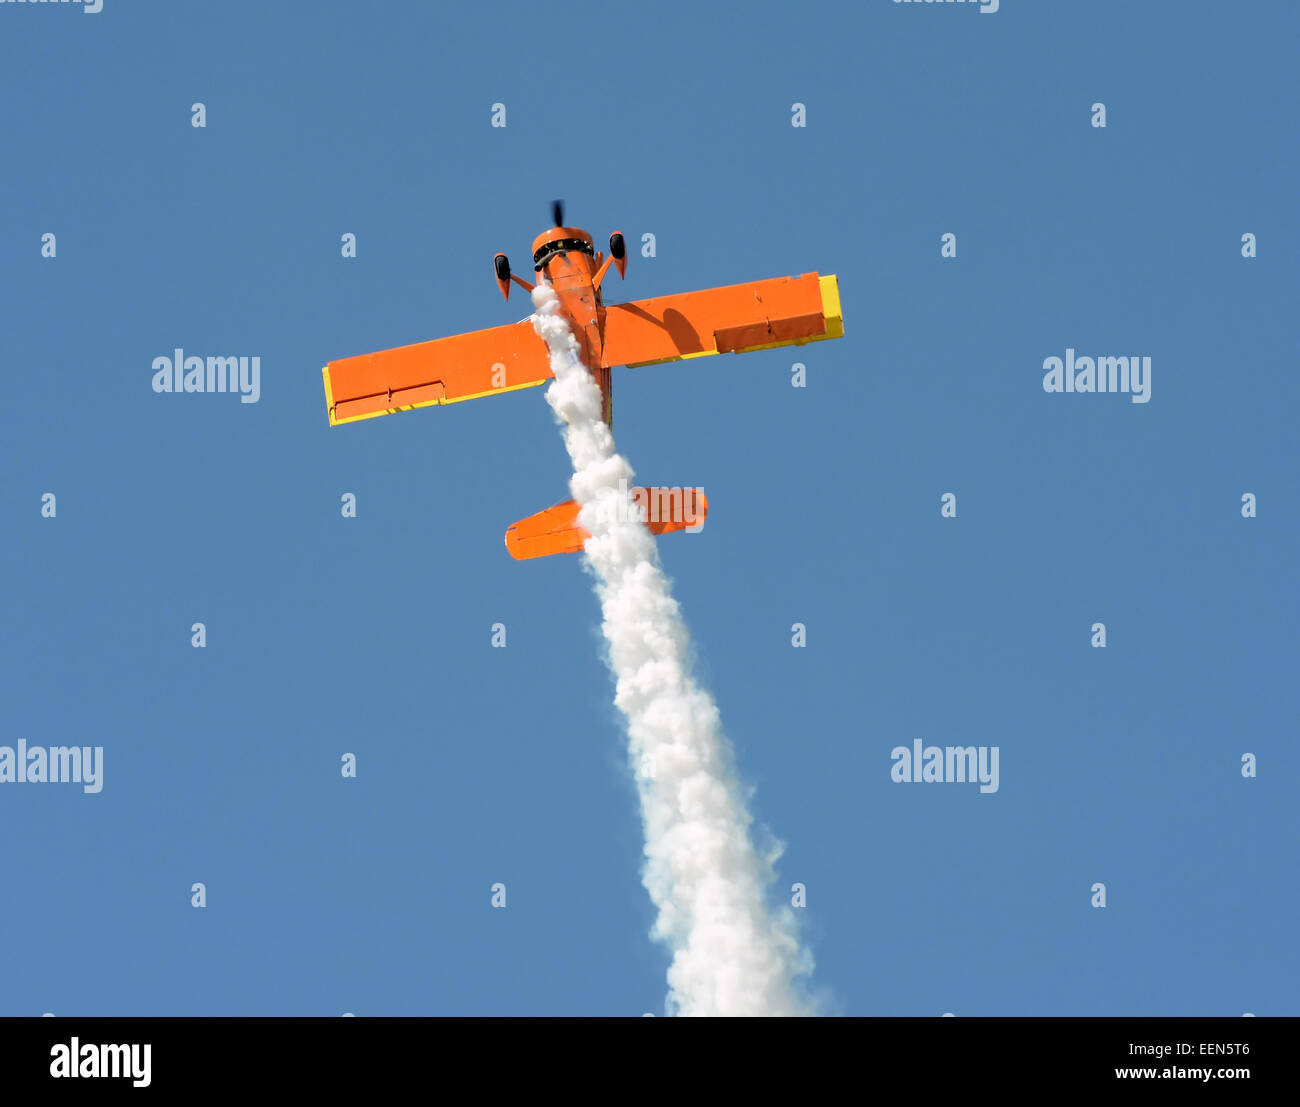 retro orange colored airplane performing aerobatics - Stock Image